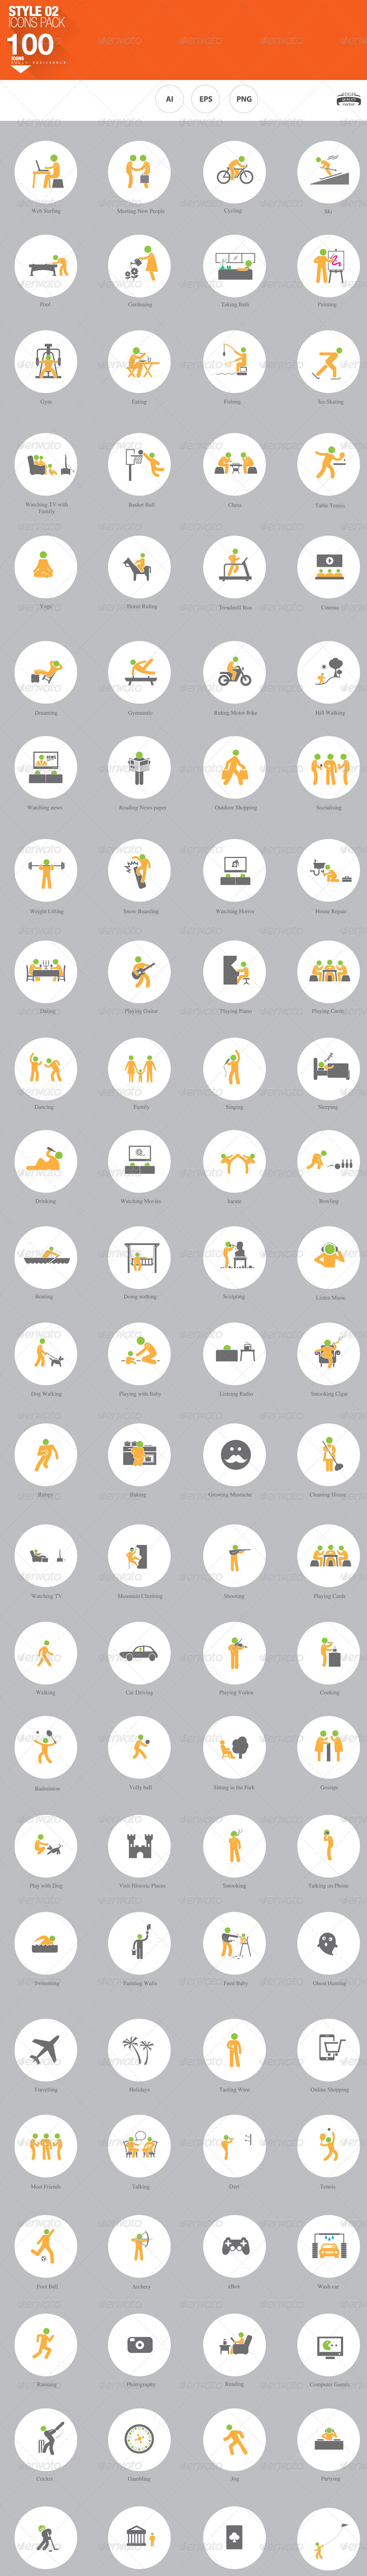 hobbies and interests icons by nadia graphicriver preview set preview 01 jpg